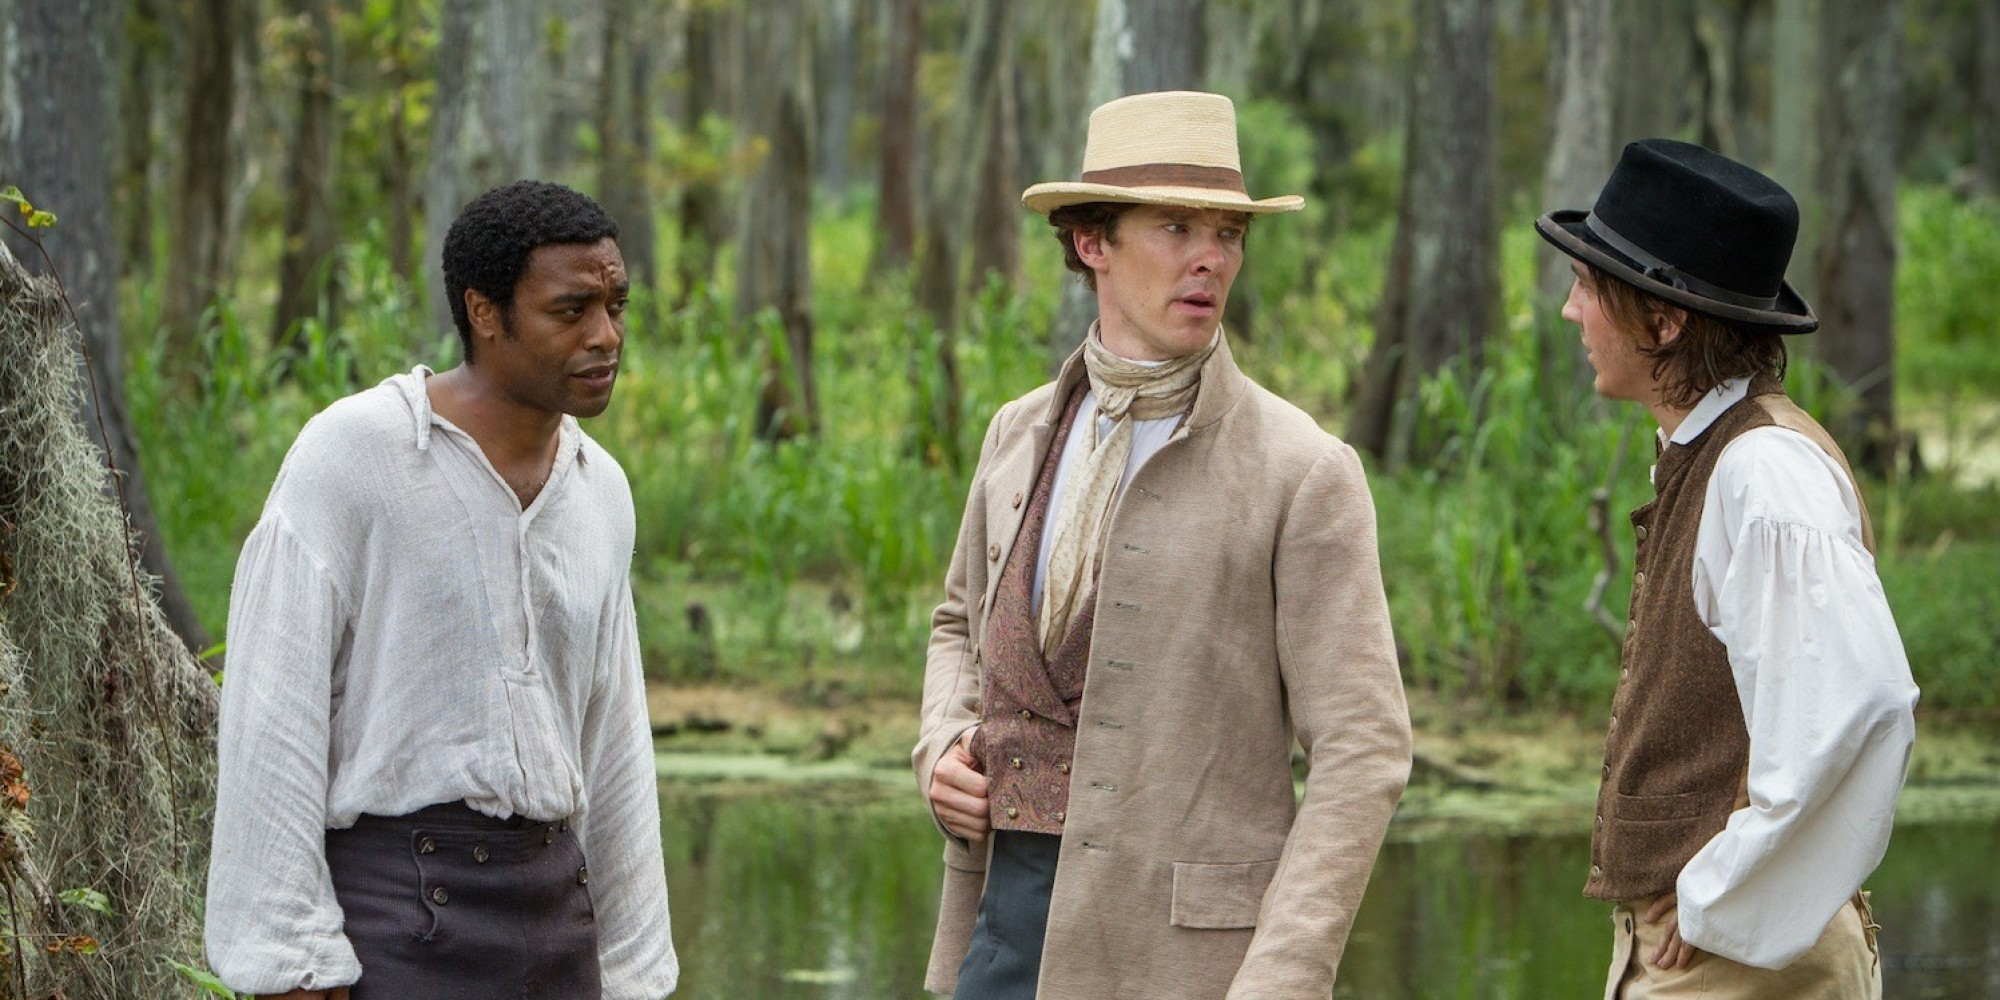 Here's What Happened After A Second Viewing Of '12 Years A Slave' | HuffPost